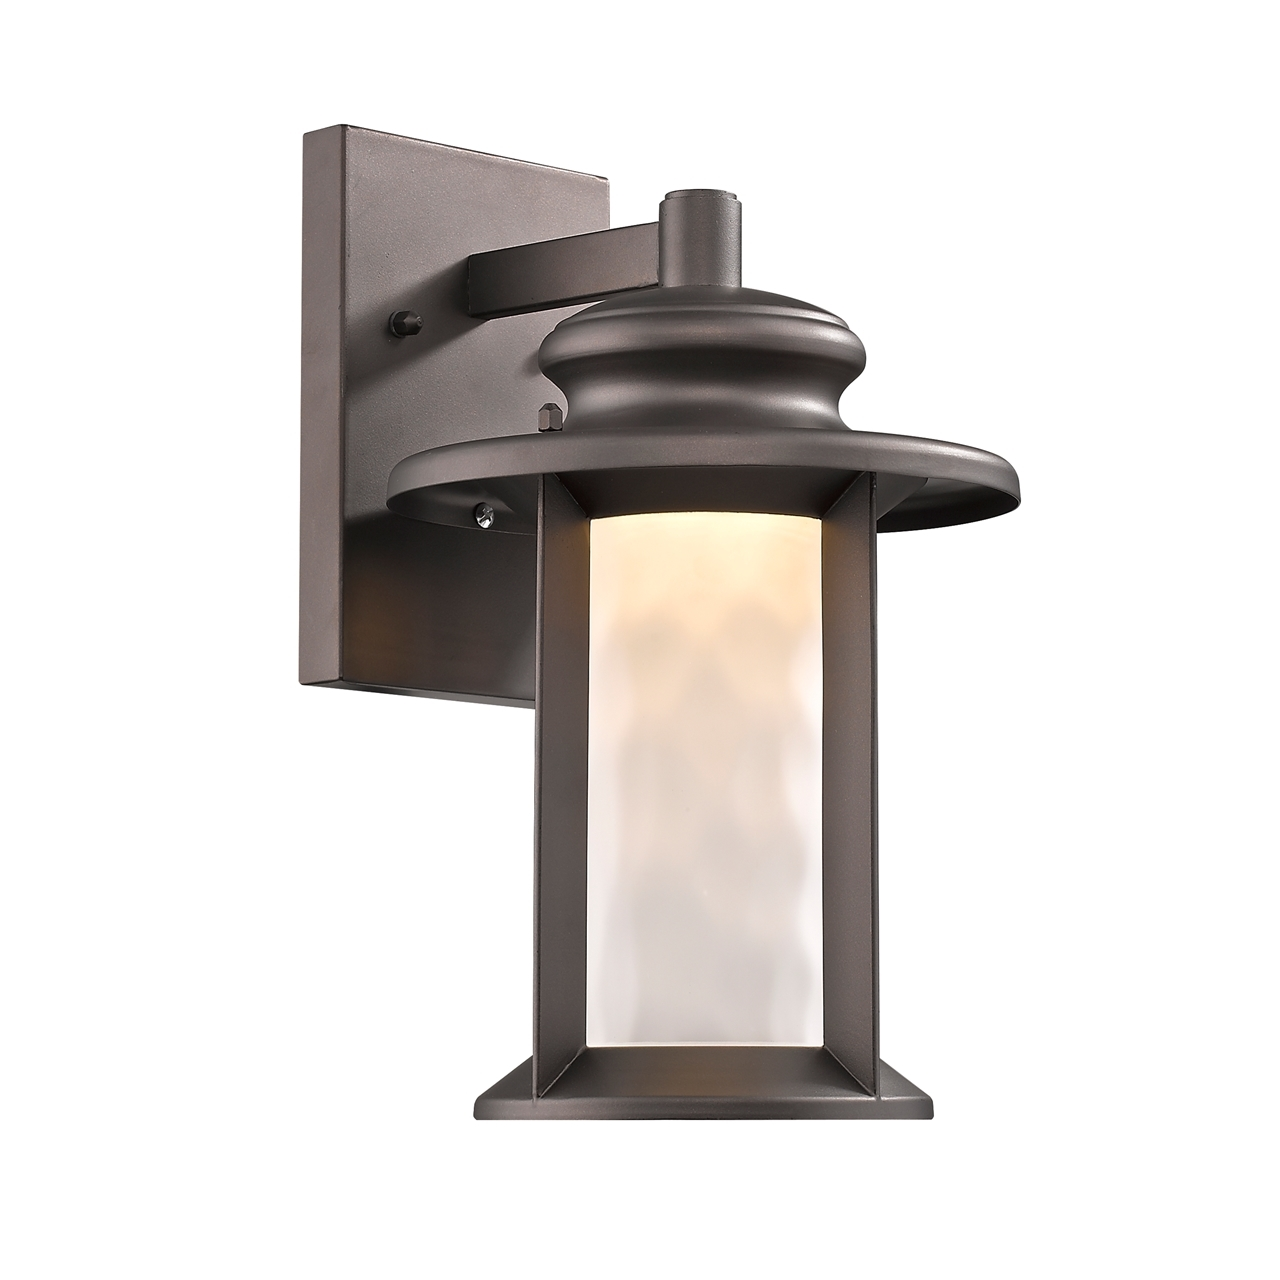 CHLOE Lighting, Inc CH2S074RB12-ODL LED Outdoor Sconce on Led Sconce Lighting id=52243